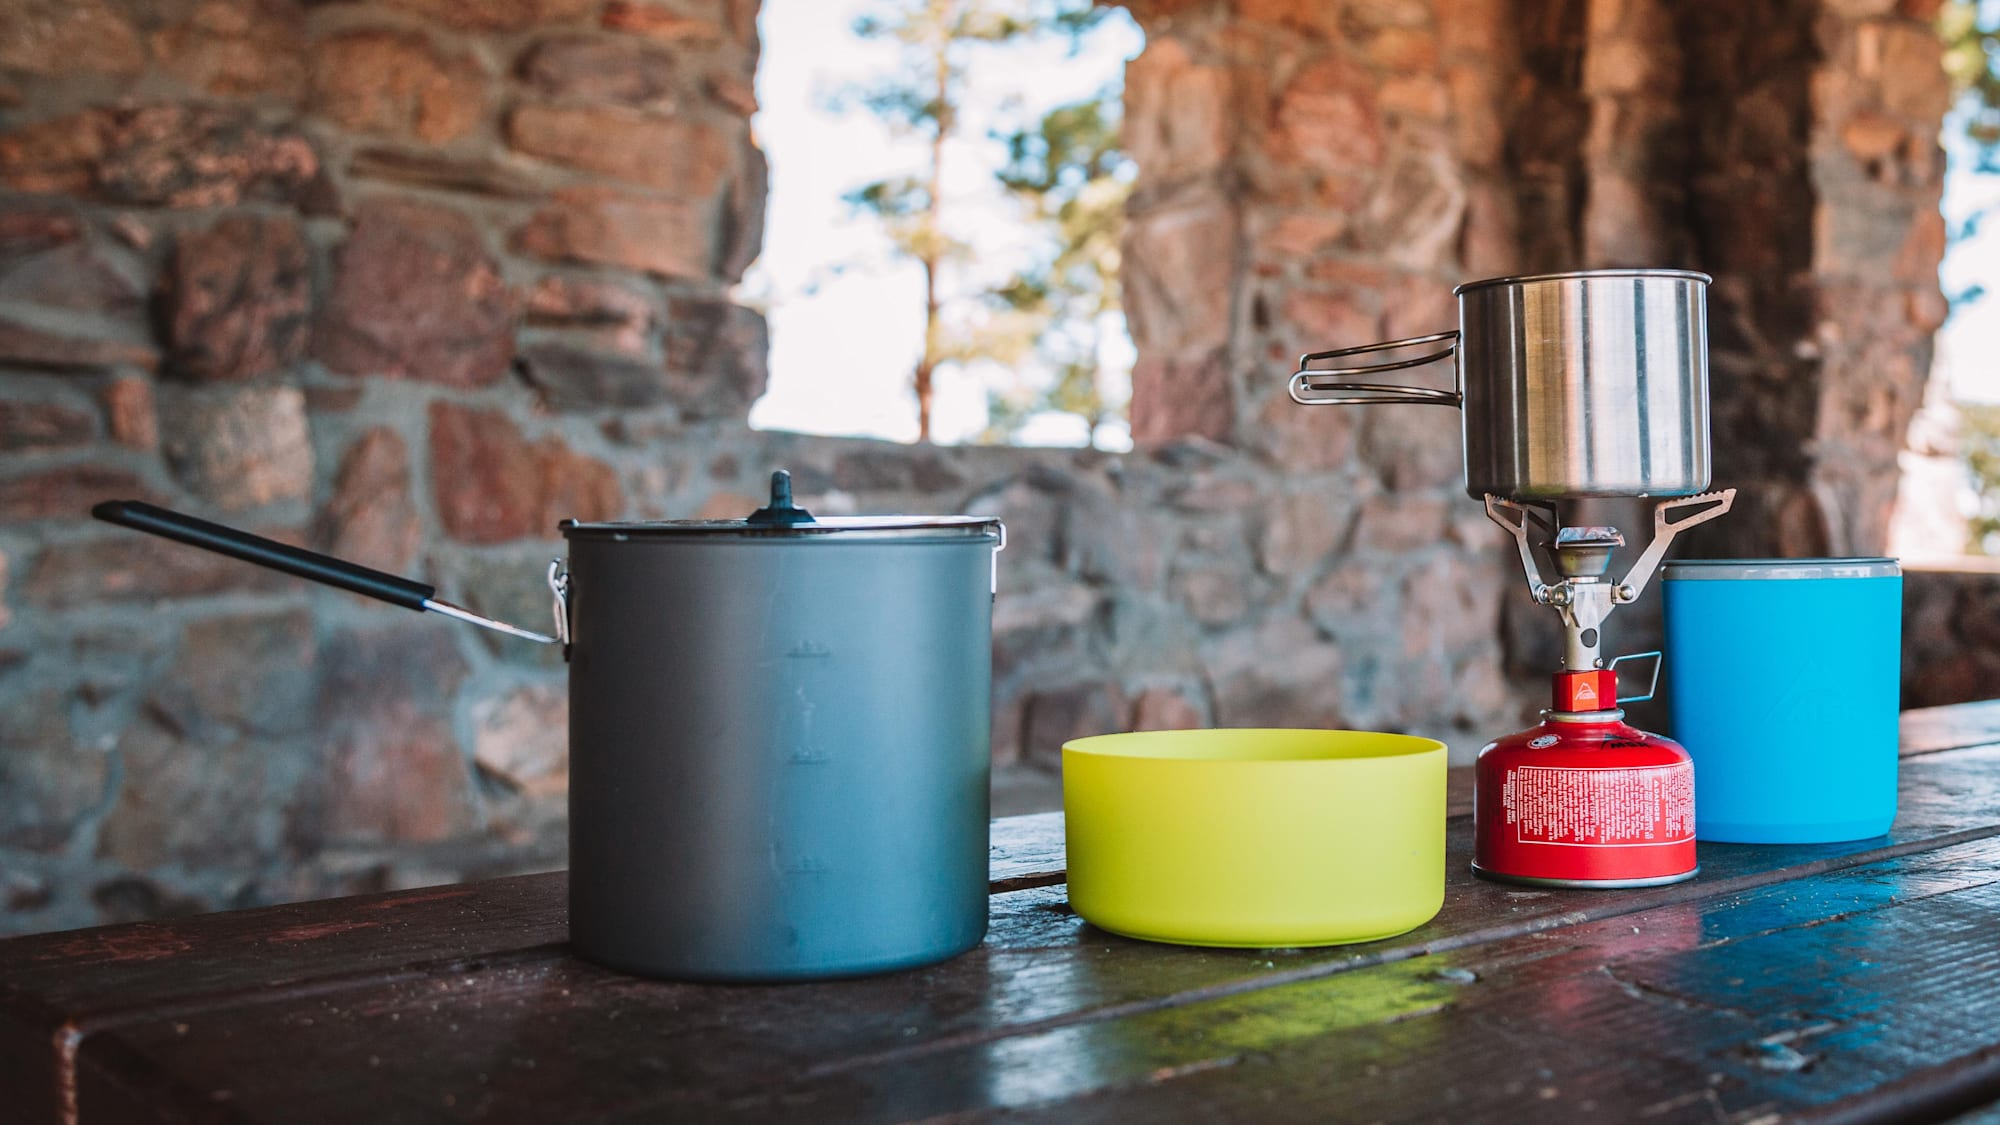 24 essential items to take on a car camping trip | Autoblog